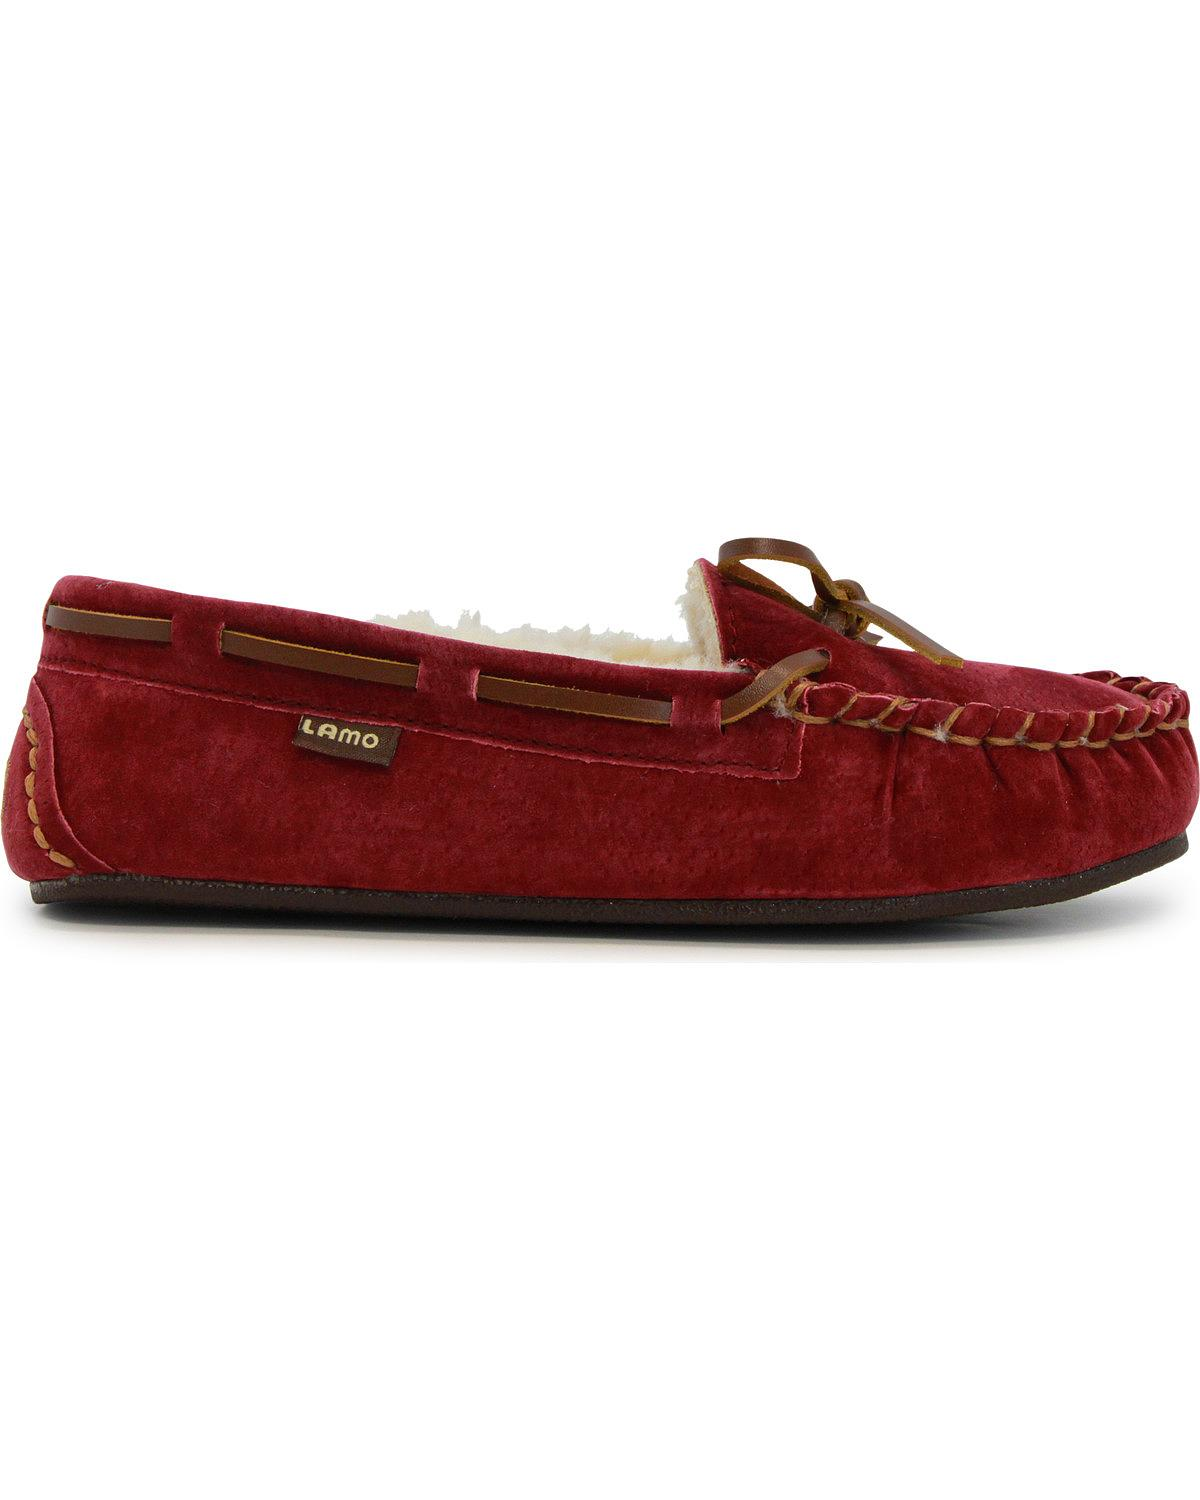 Lamo Footwear Women's Britain Moccasins Ew1360-92 by Lamo Footwear